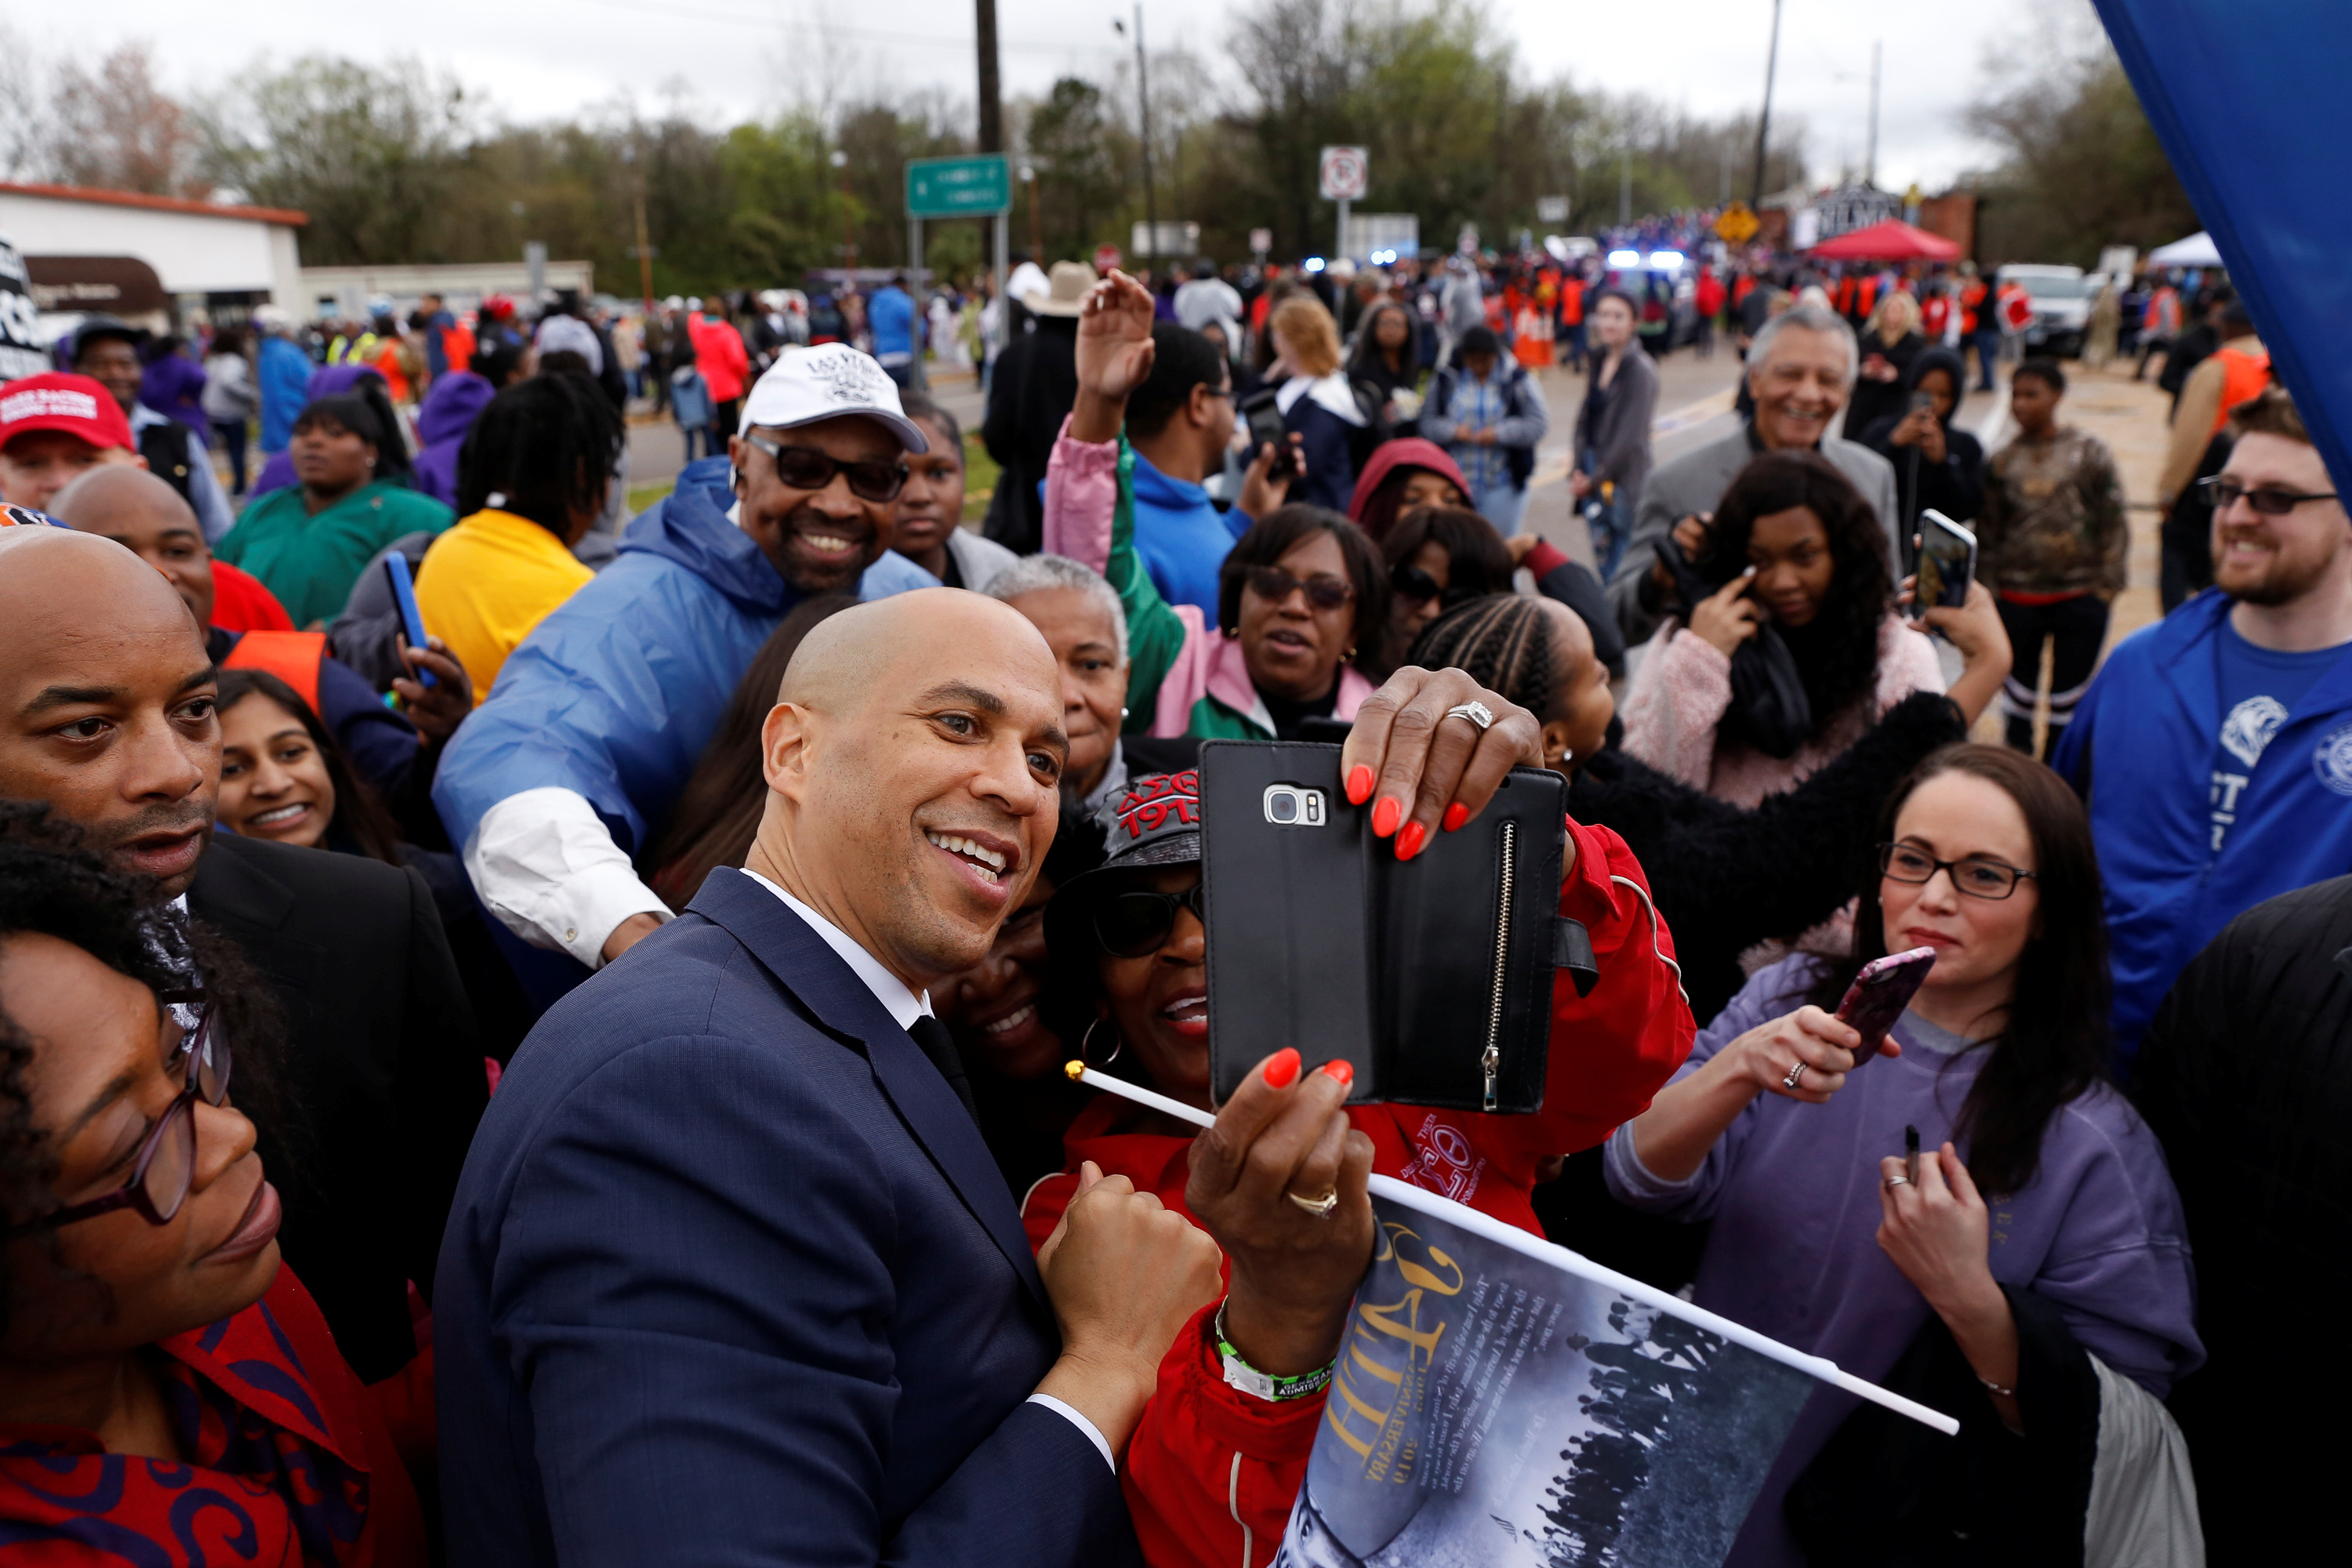 Democratic 2020 U.S. presidential candidate and U.S. Senator Cory Booker (D-NJ) takes a photo with supporters after marching across the Edmund Pettus Bridge during the Bloody Sunday commemorative march in Selma, Alabama, U.S. March 3, 2019. REUTERS/Chris Aluka Berry